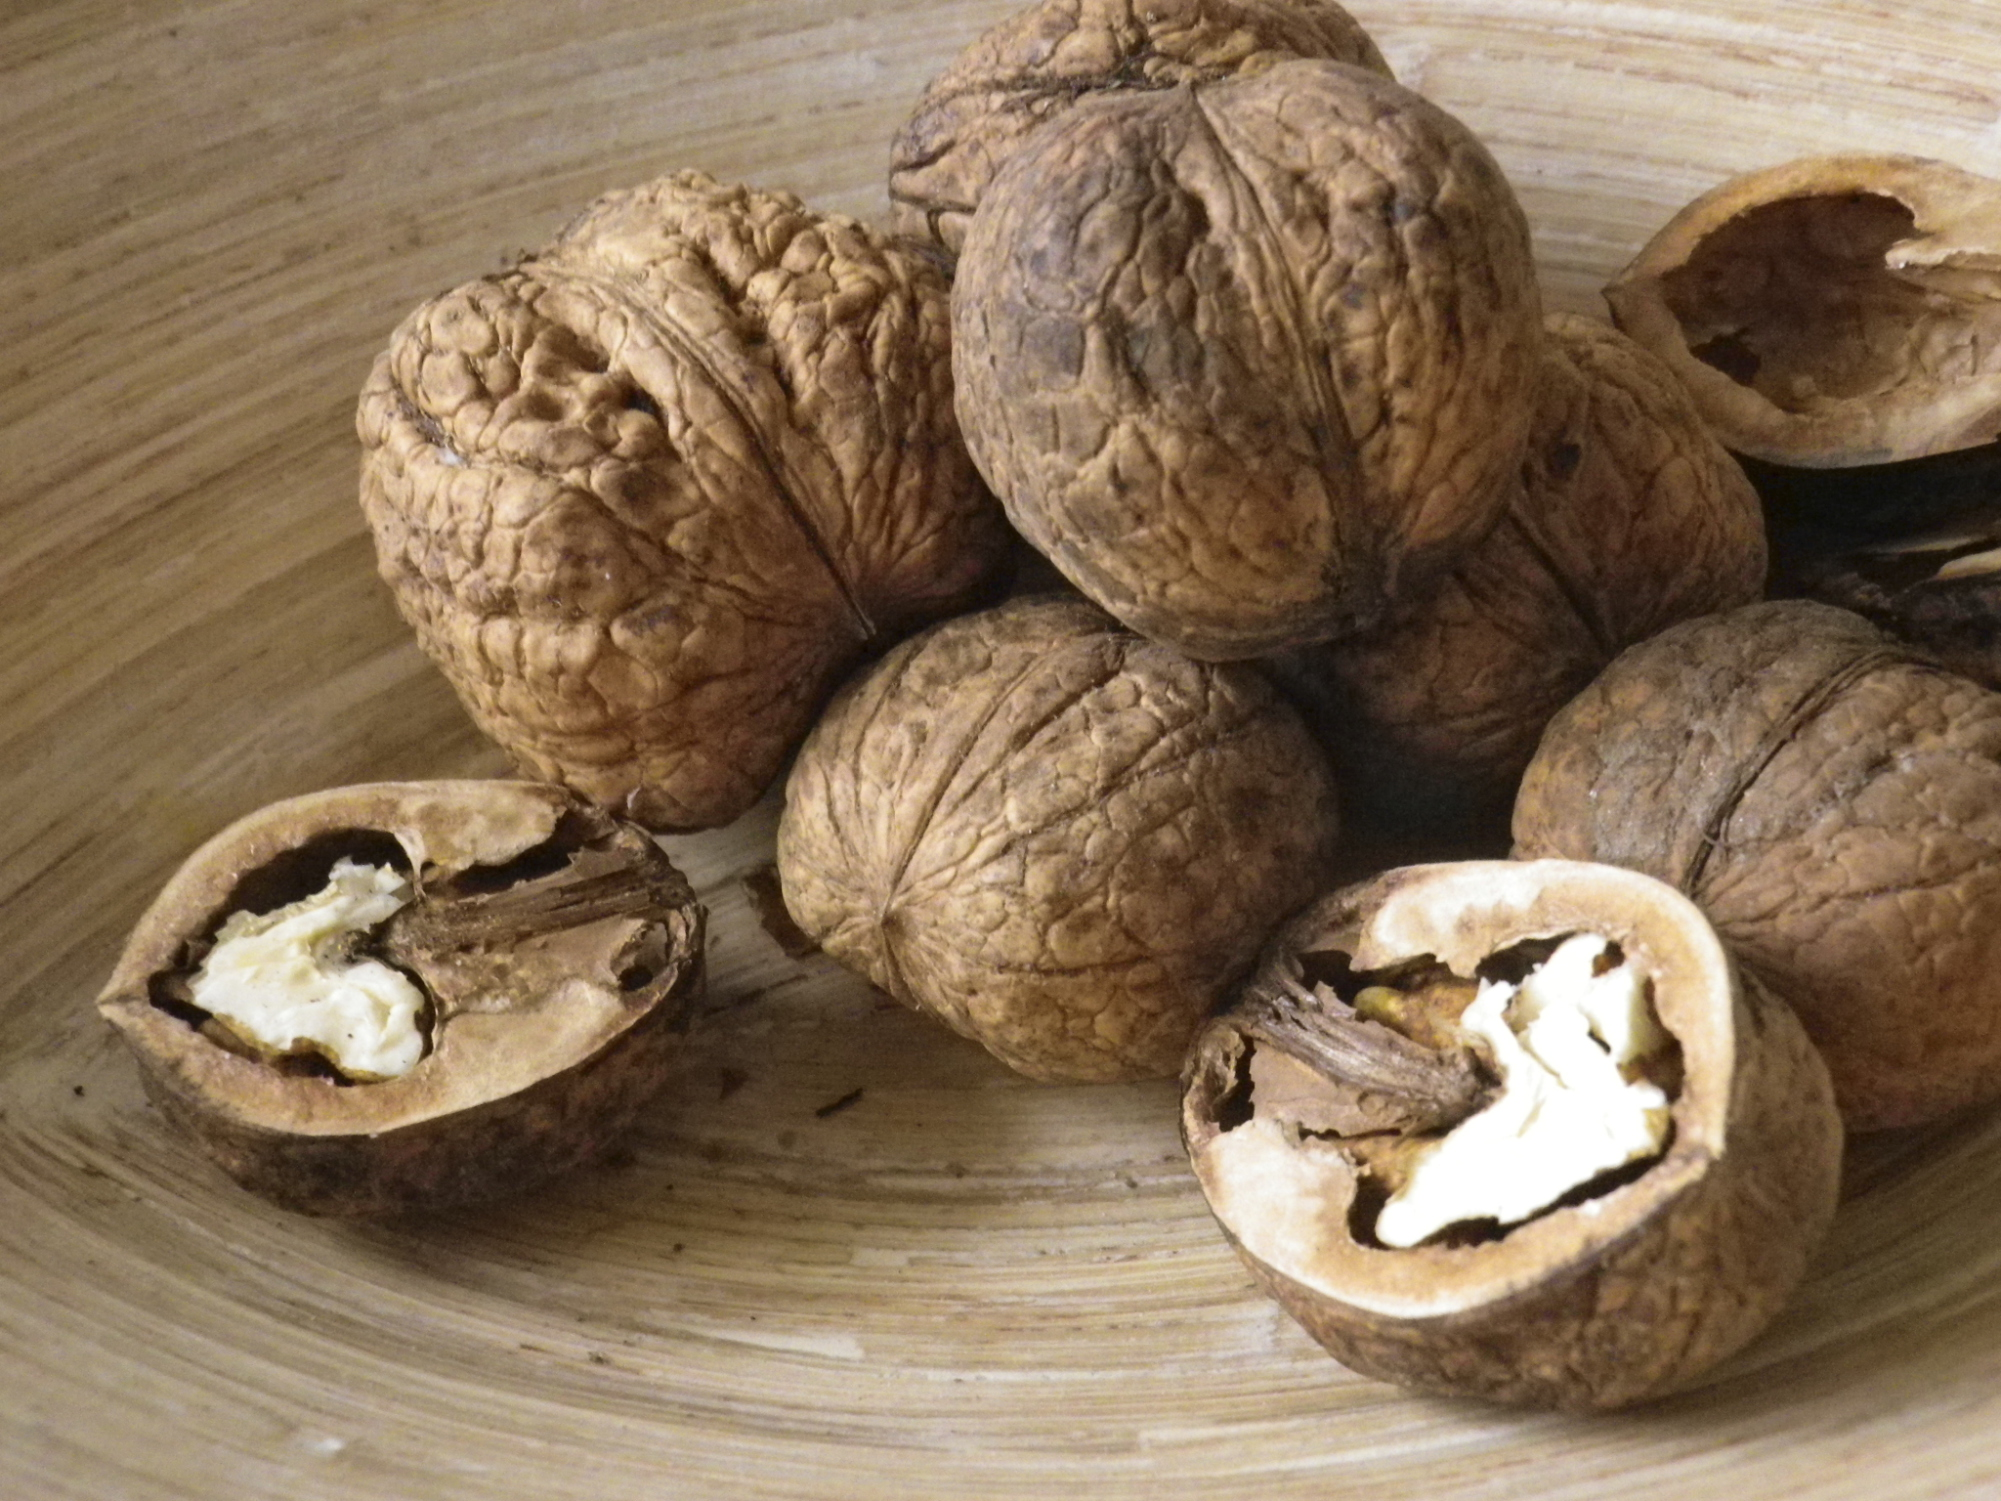 How Much Fiber Do Walnuts Have?